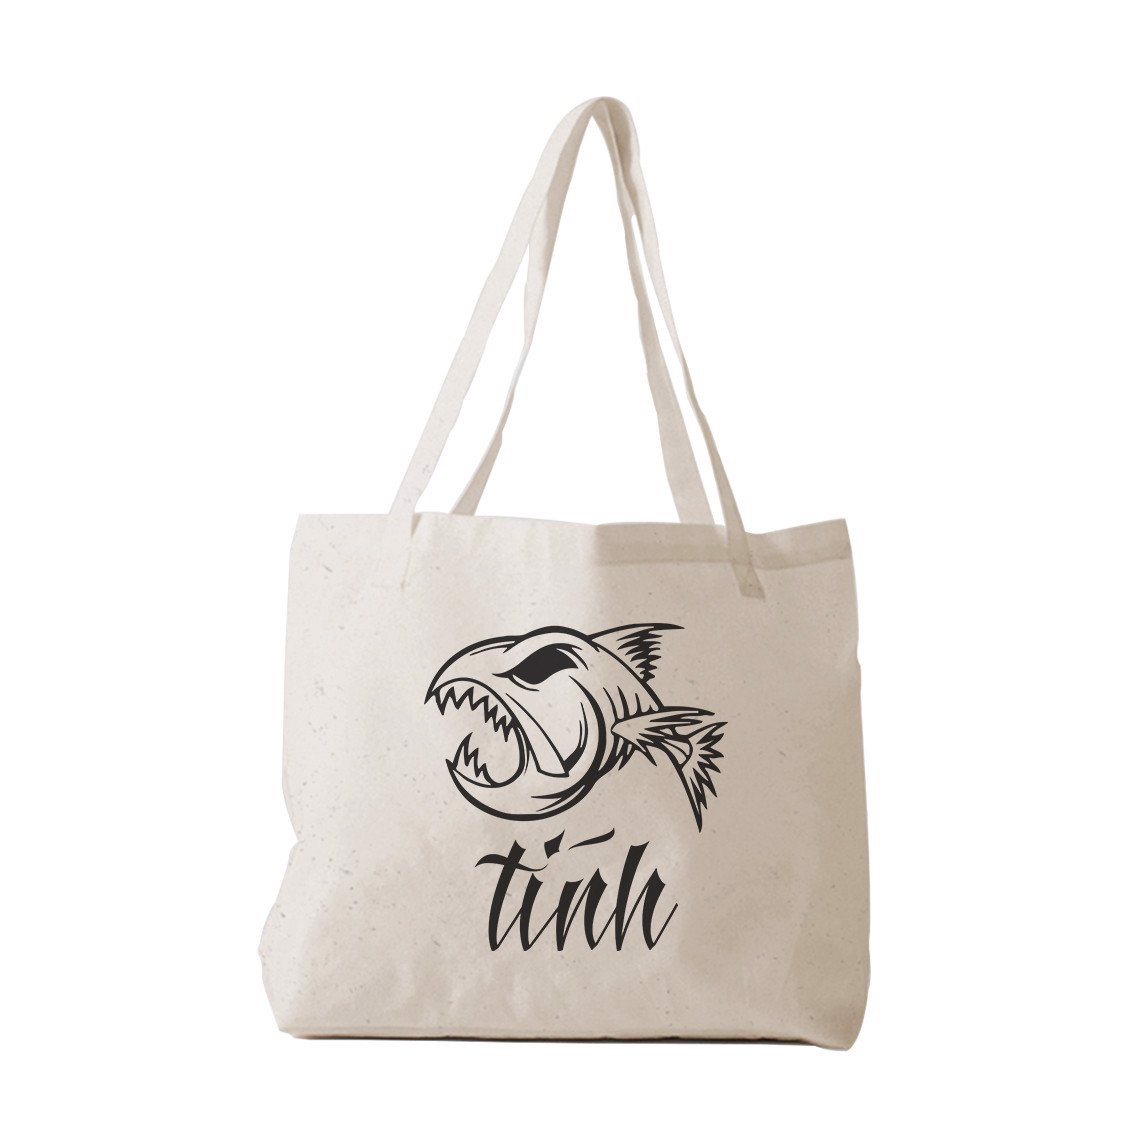 Tote Bag - Fish Tính